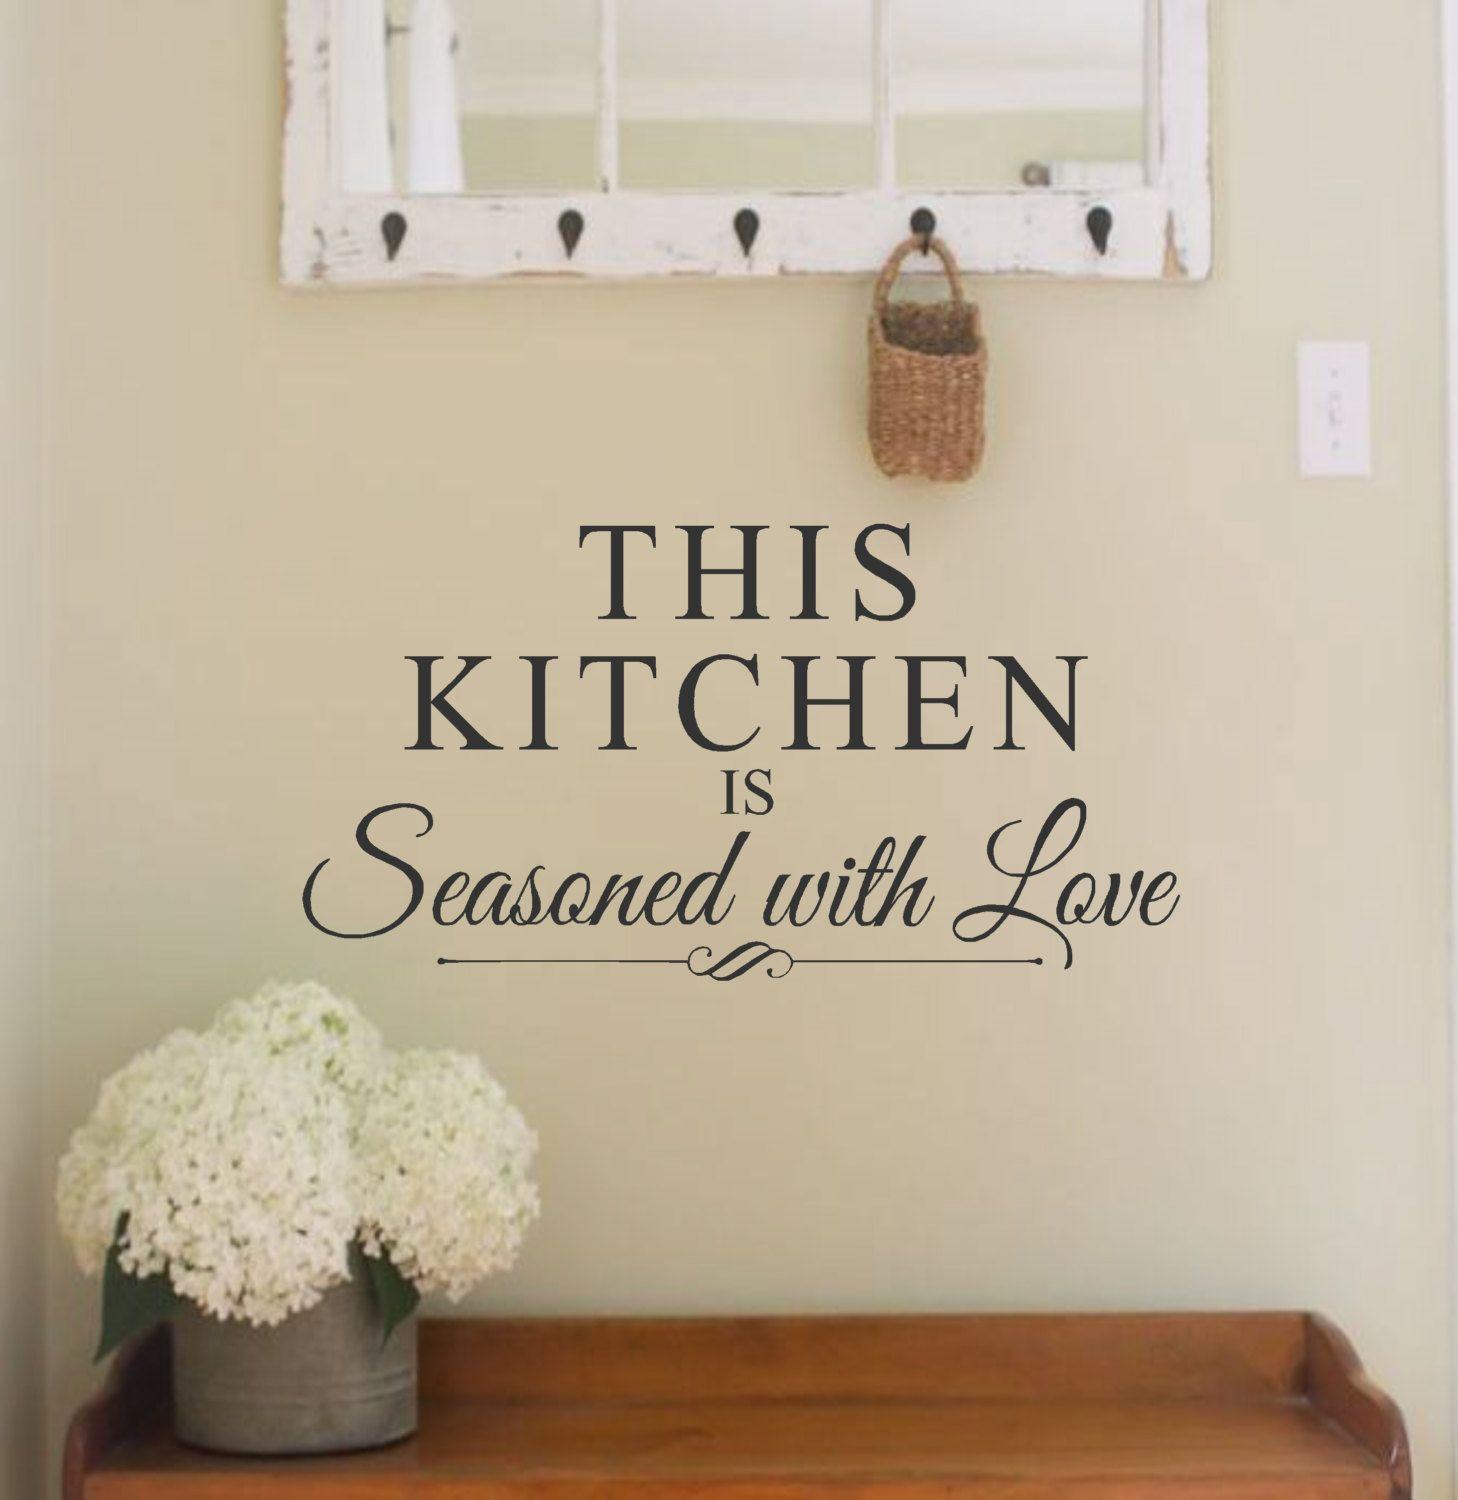 kitchen vinyl wall decal this kitchen is seasoned with love wall quote kitchen decor vinyl on kitchen decor quotes wall decals id=30047